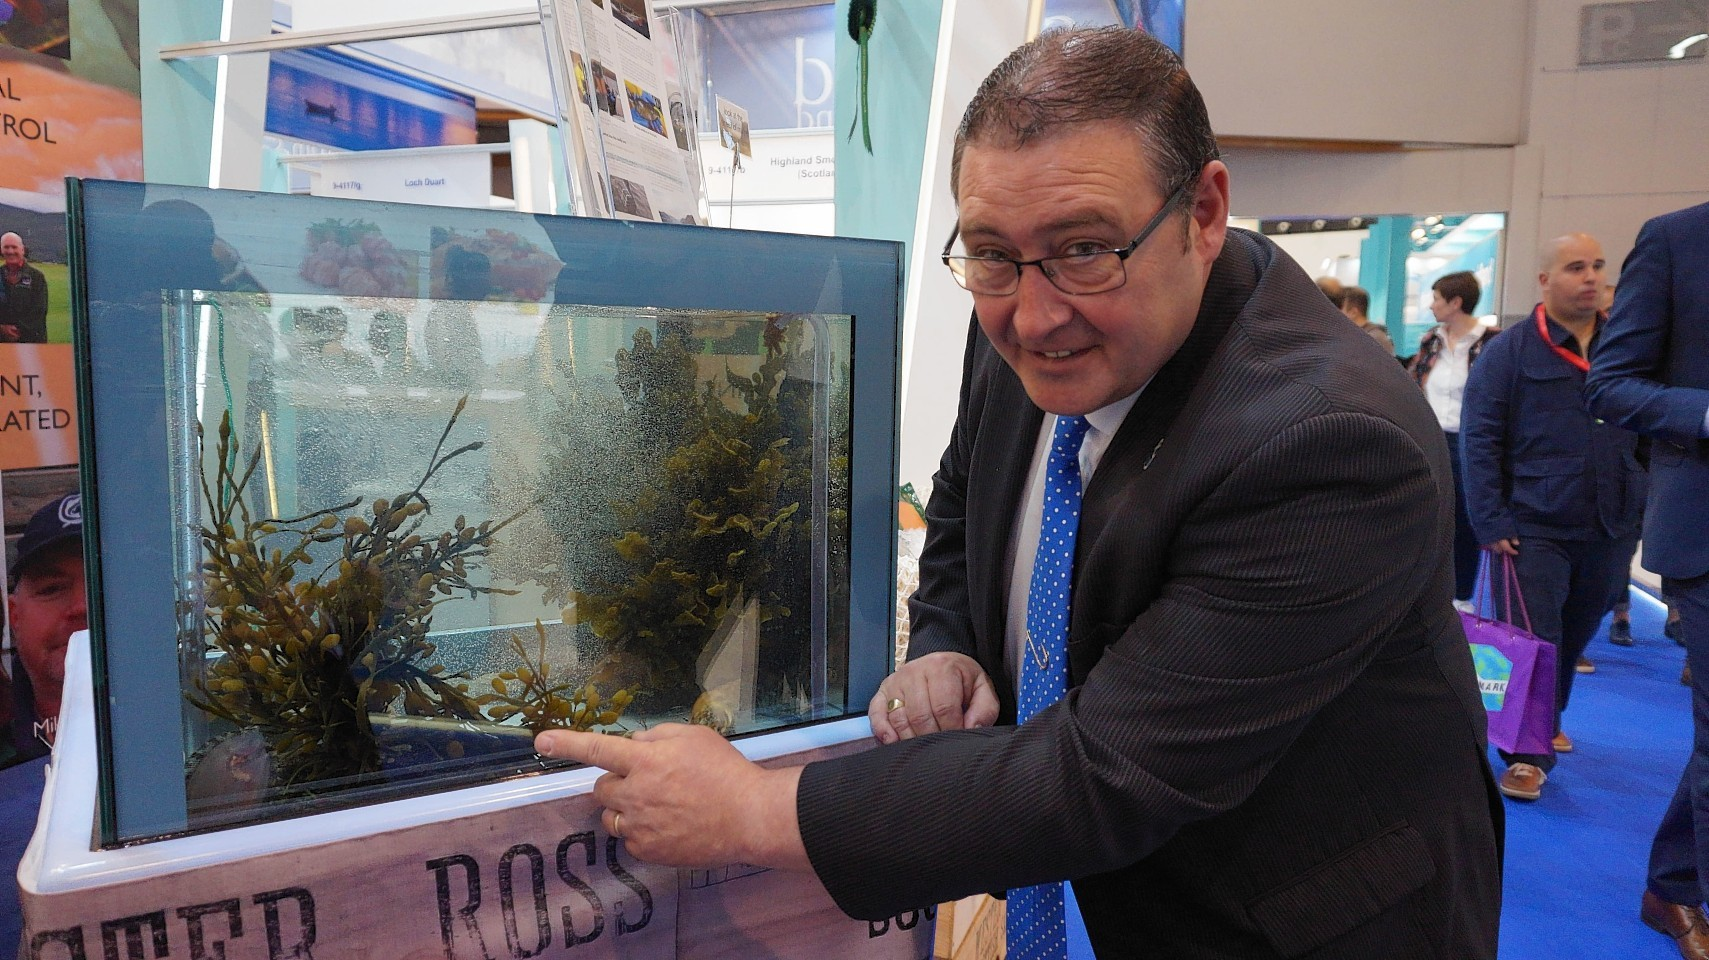 North-east skipper Jimmy Buchan takes a look at the Wester Ross Salmon aquarium